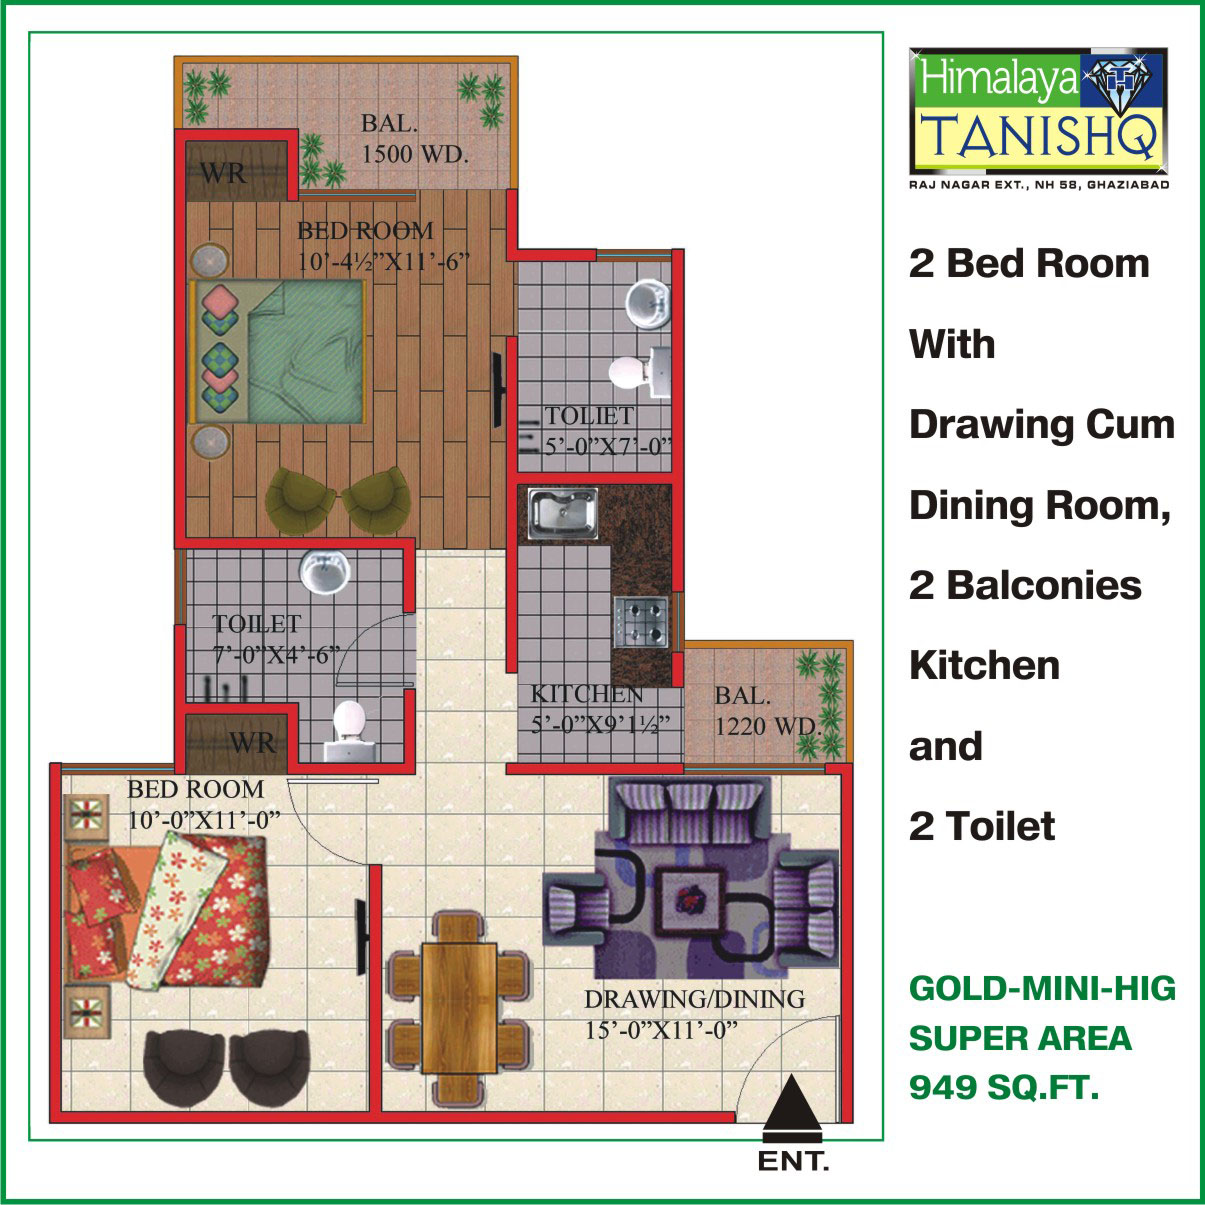 Himalaya Tanishq Raj Nagar Extension floor plan 1350 sq. ft.